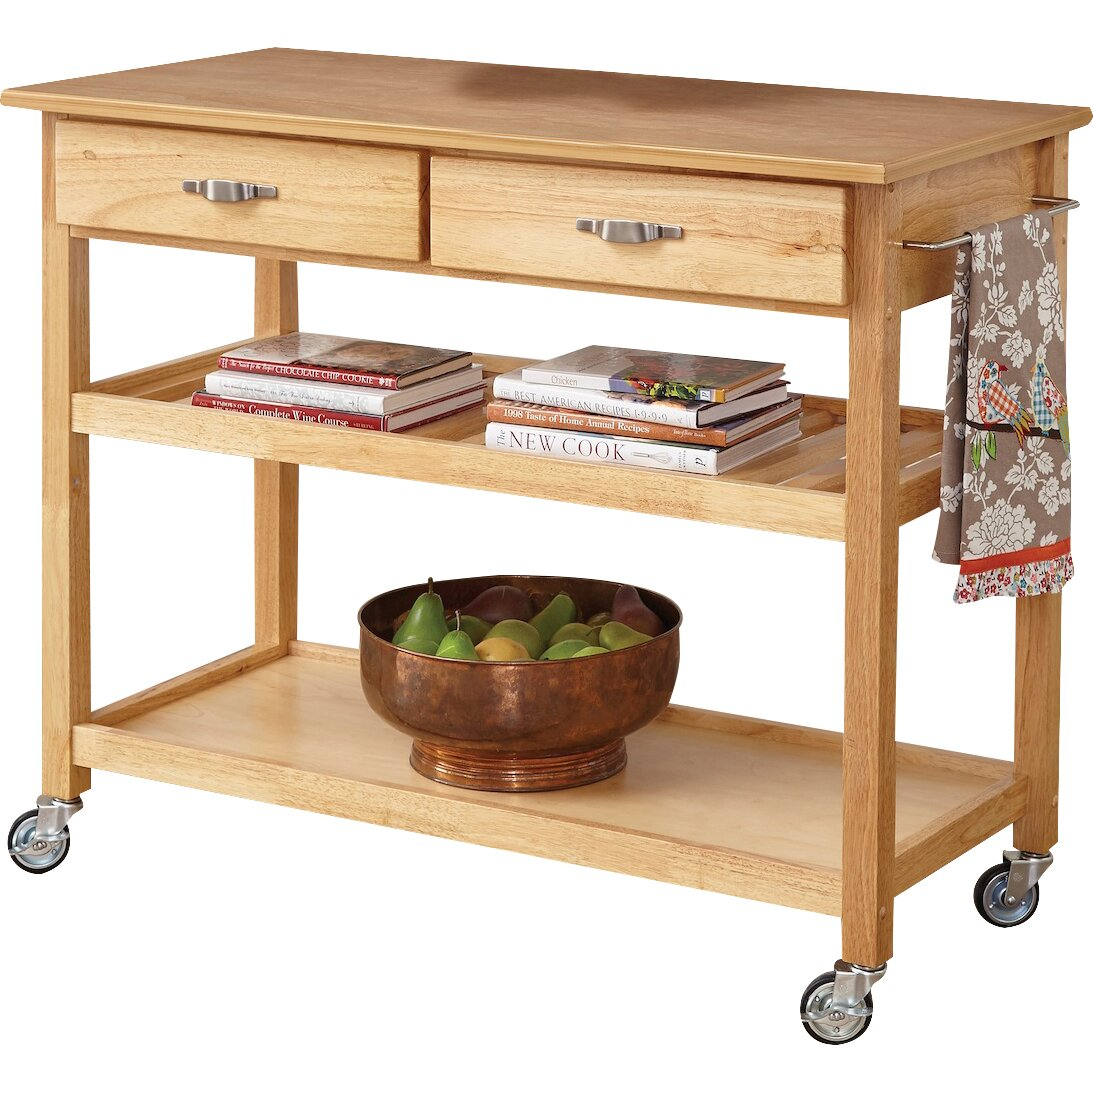 Home Styles 4528 95 Kitchen Island Cart: Home Styles Kitchen Island With Wood Top & Reviews